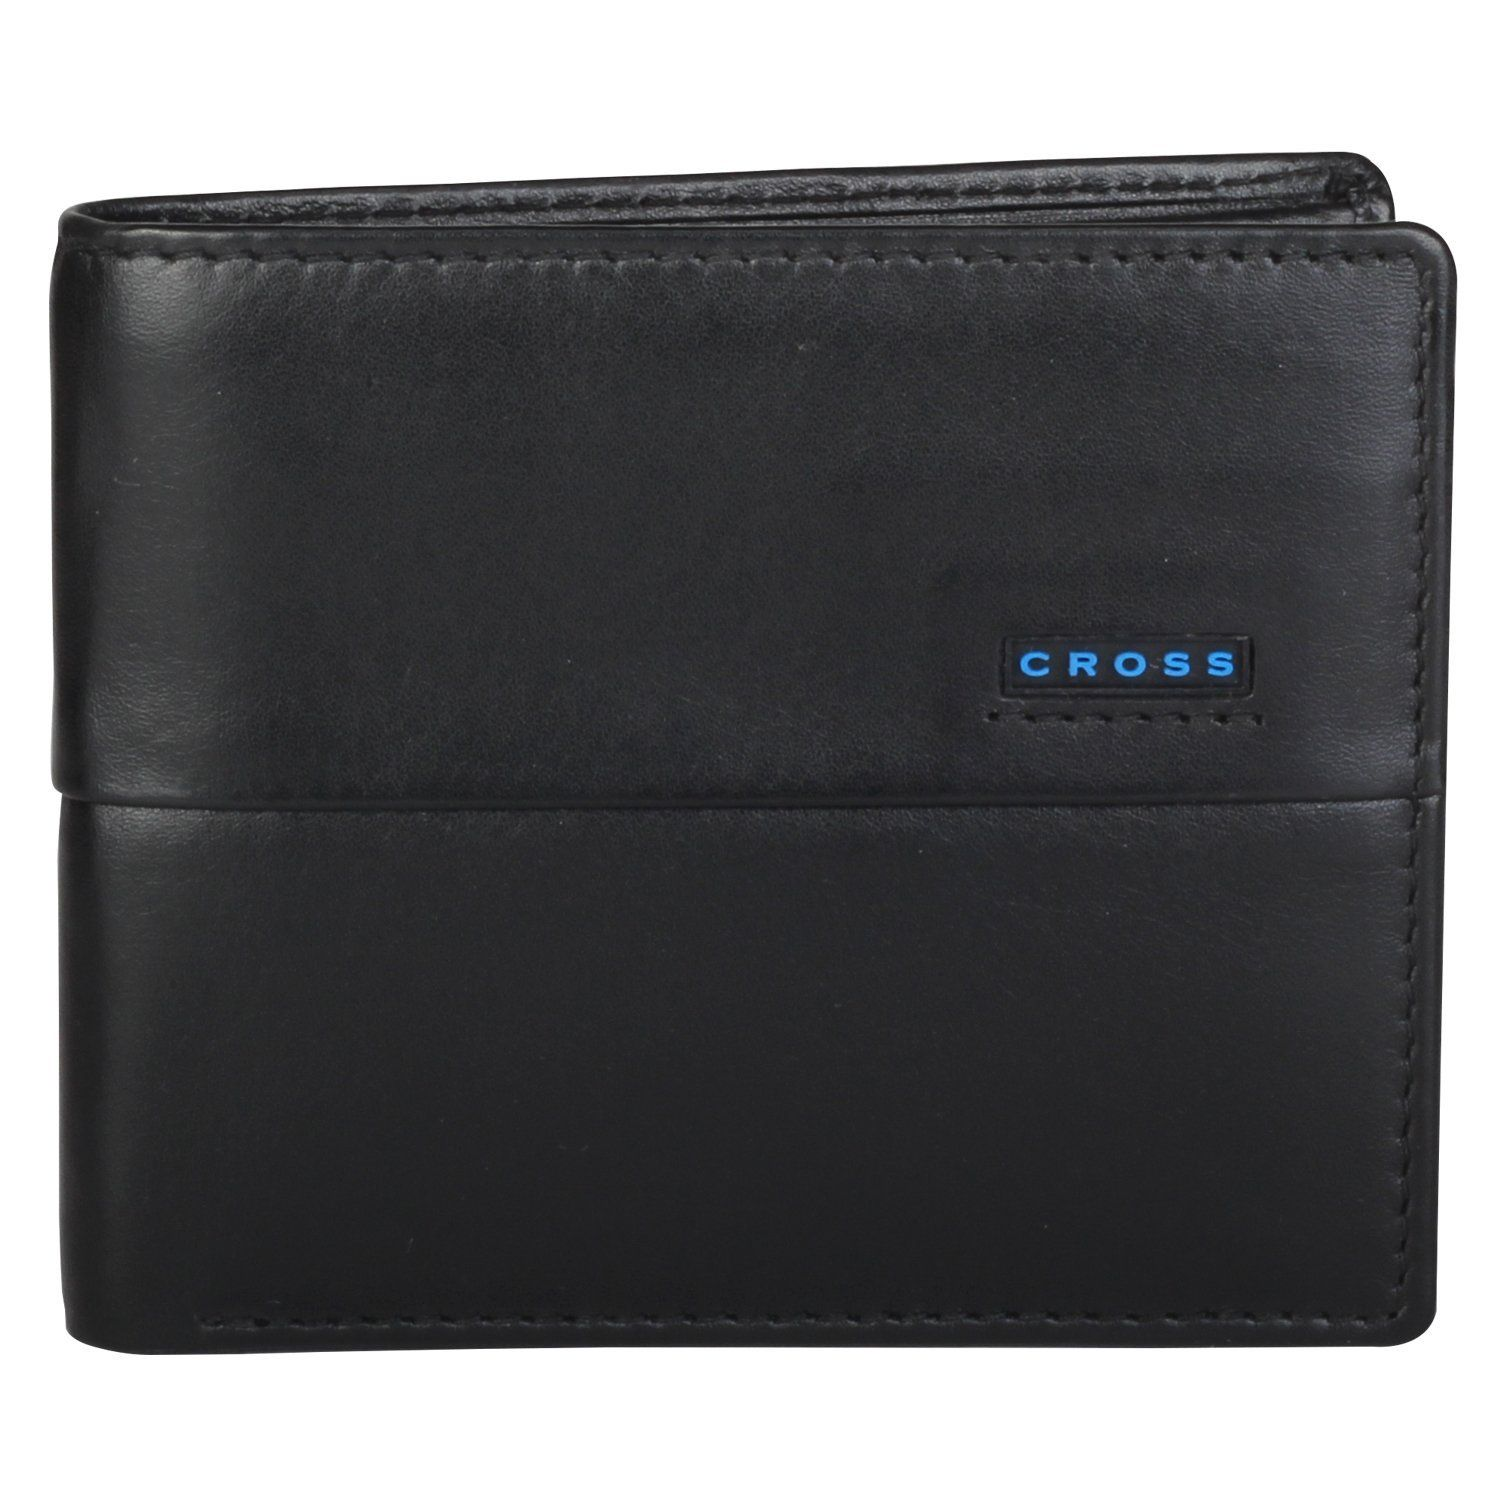 Cross mens leather bifold coin wallet with credit card